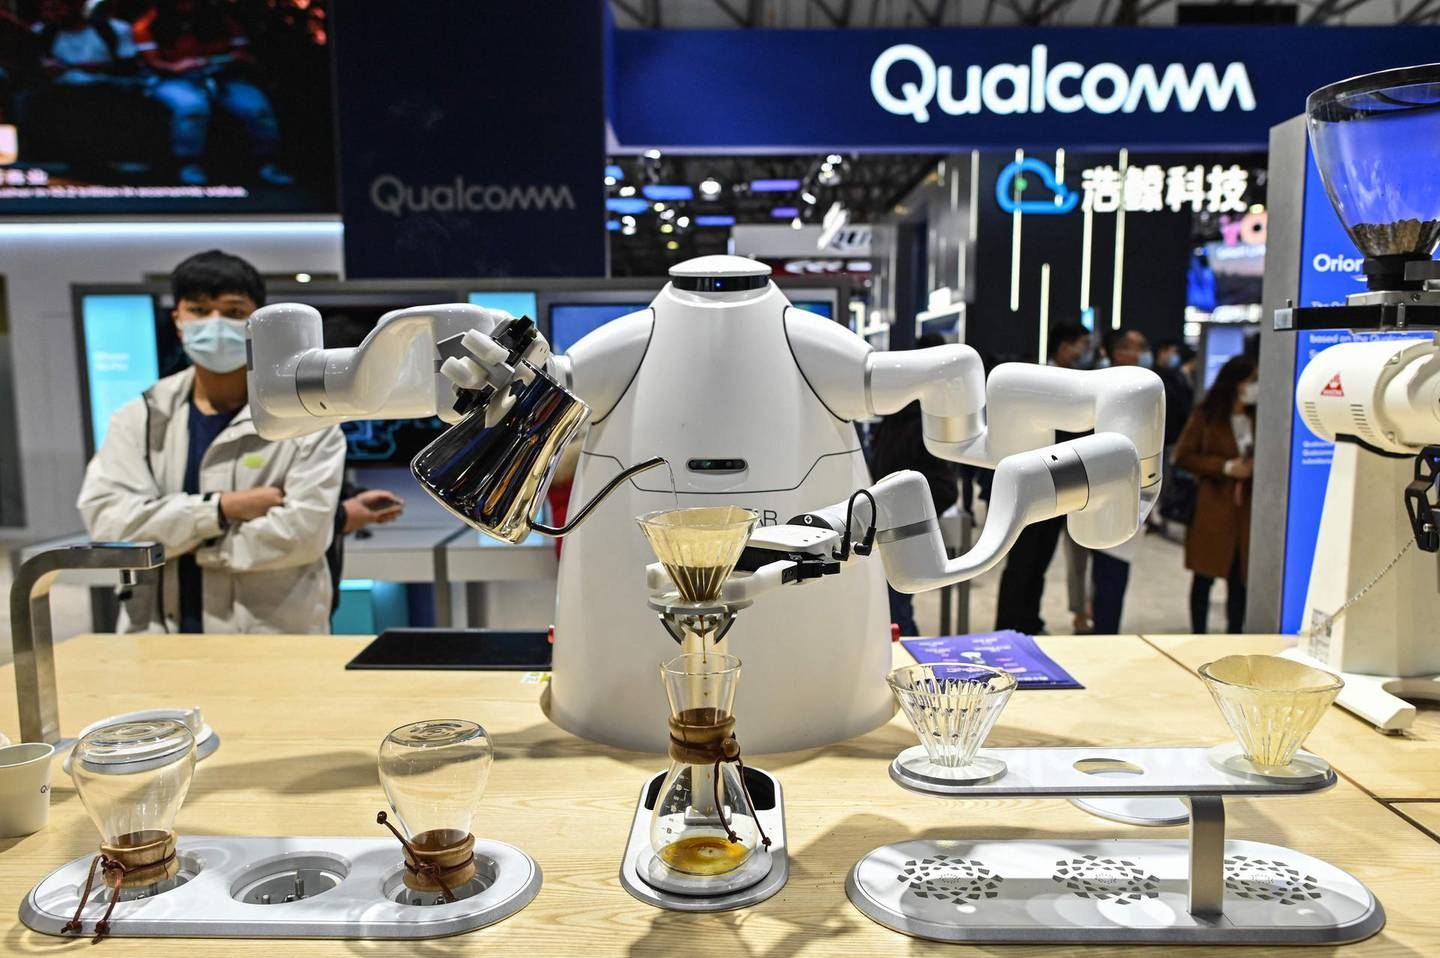 A robot prepares a coffee at a booth during the Mobile World Congress in Shanghai on February 23, 2021.  / AFP / Hector RETAMAL